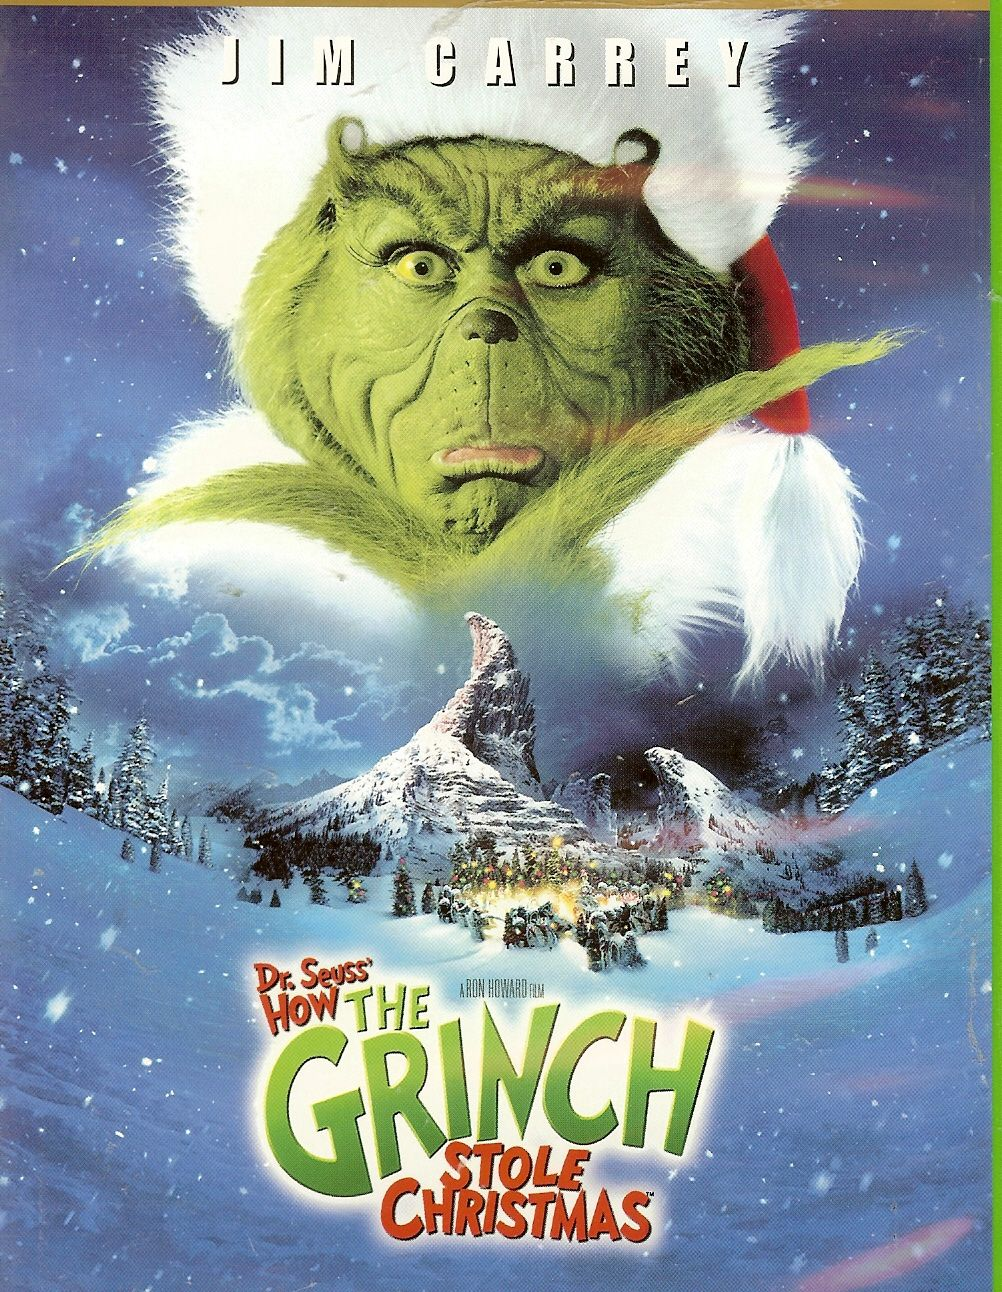 Dr. Suess How the Grinch Stole Christmas..one of my